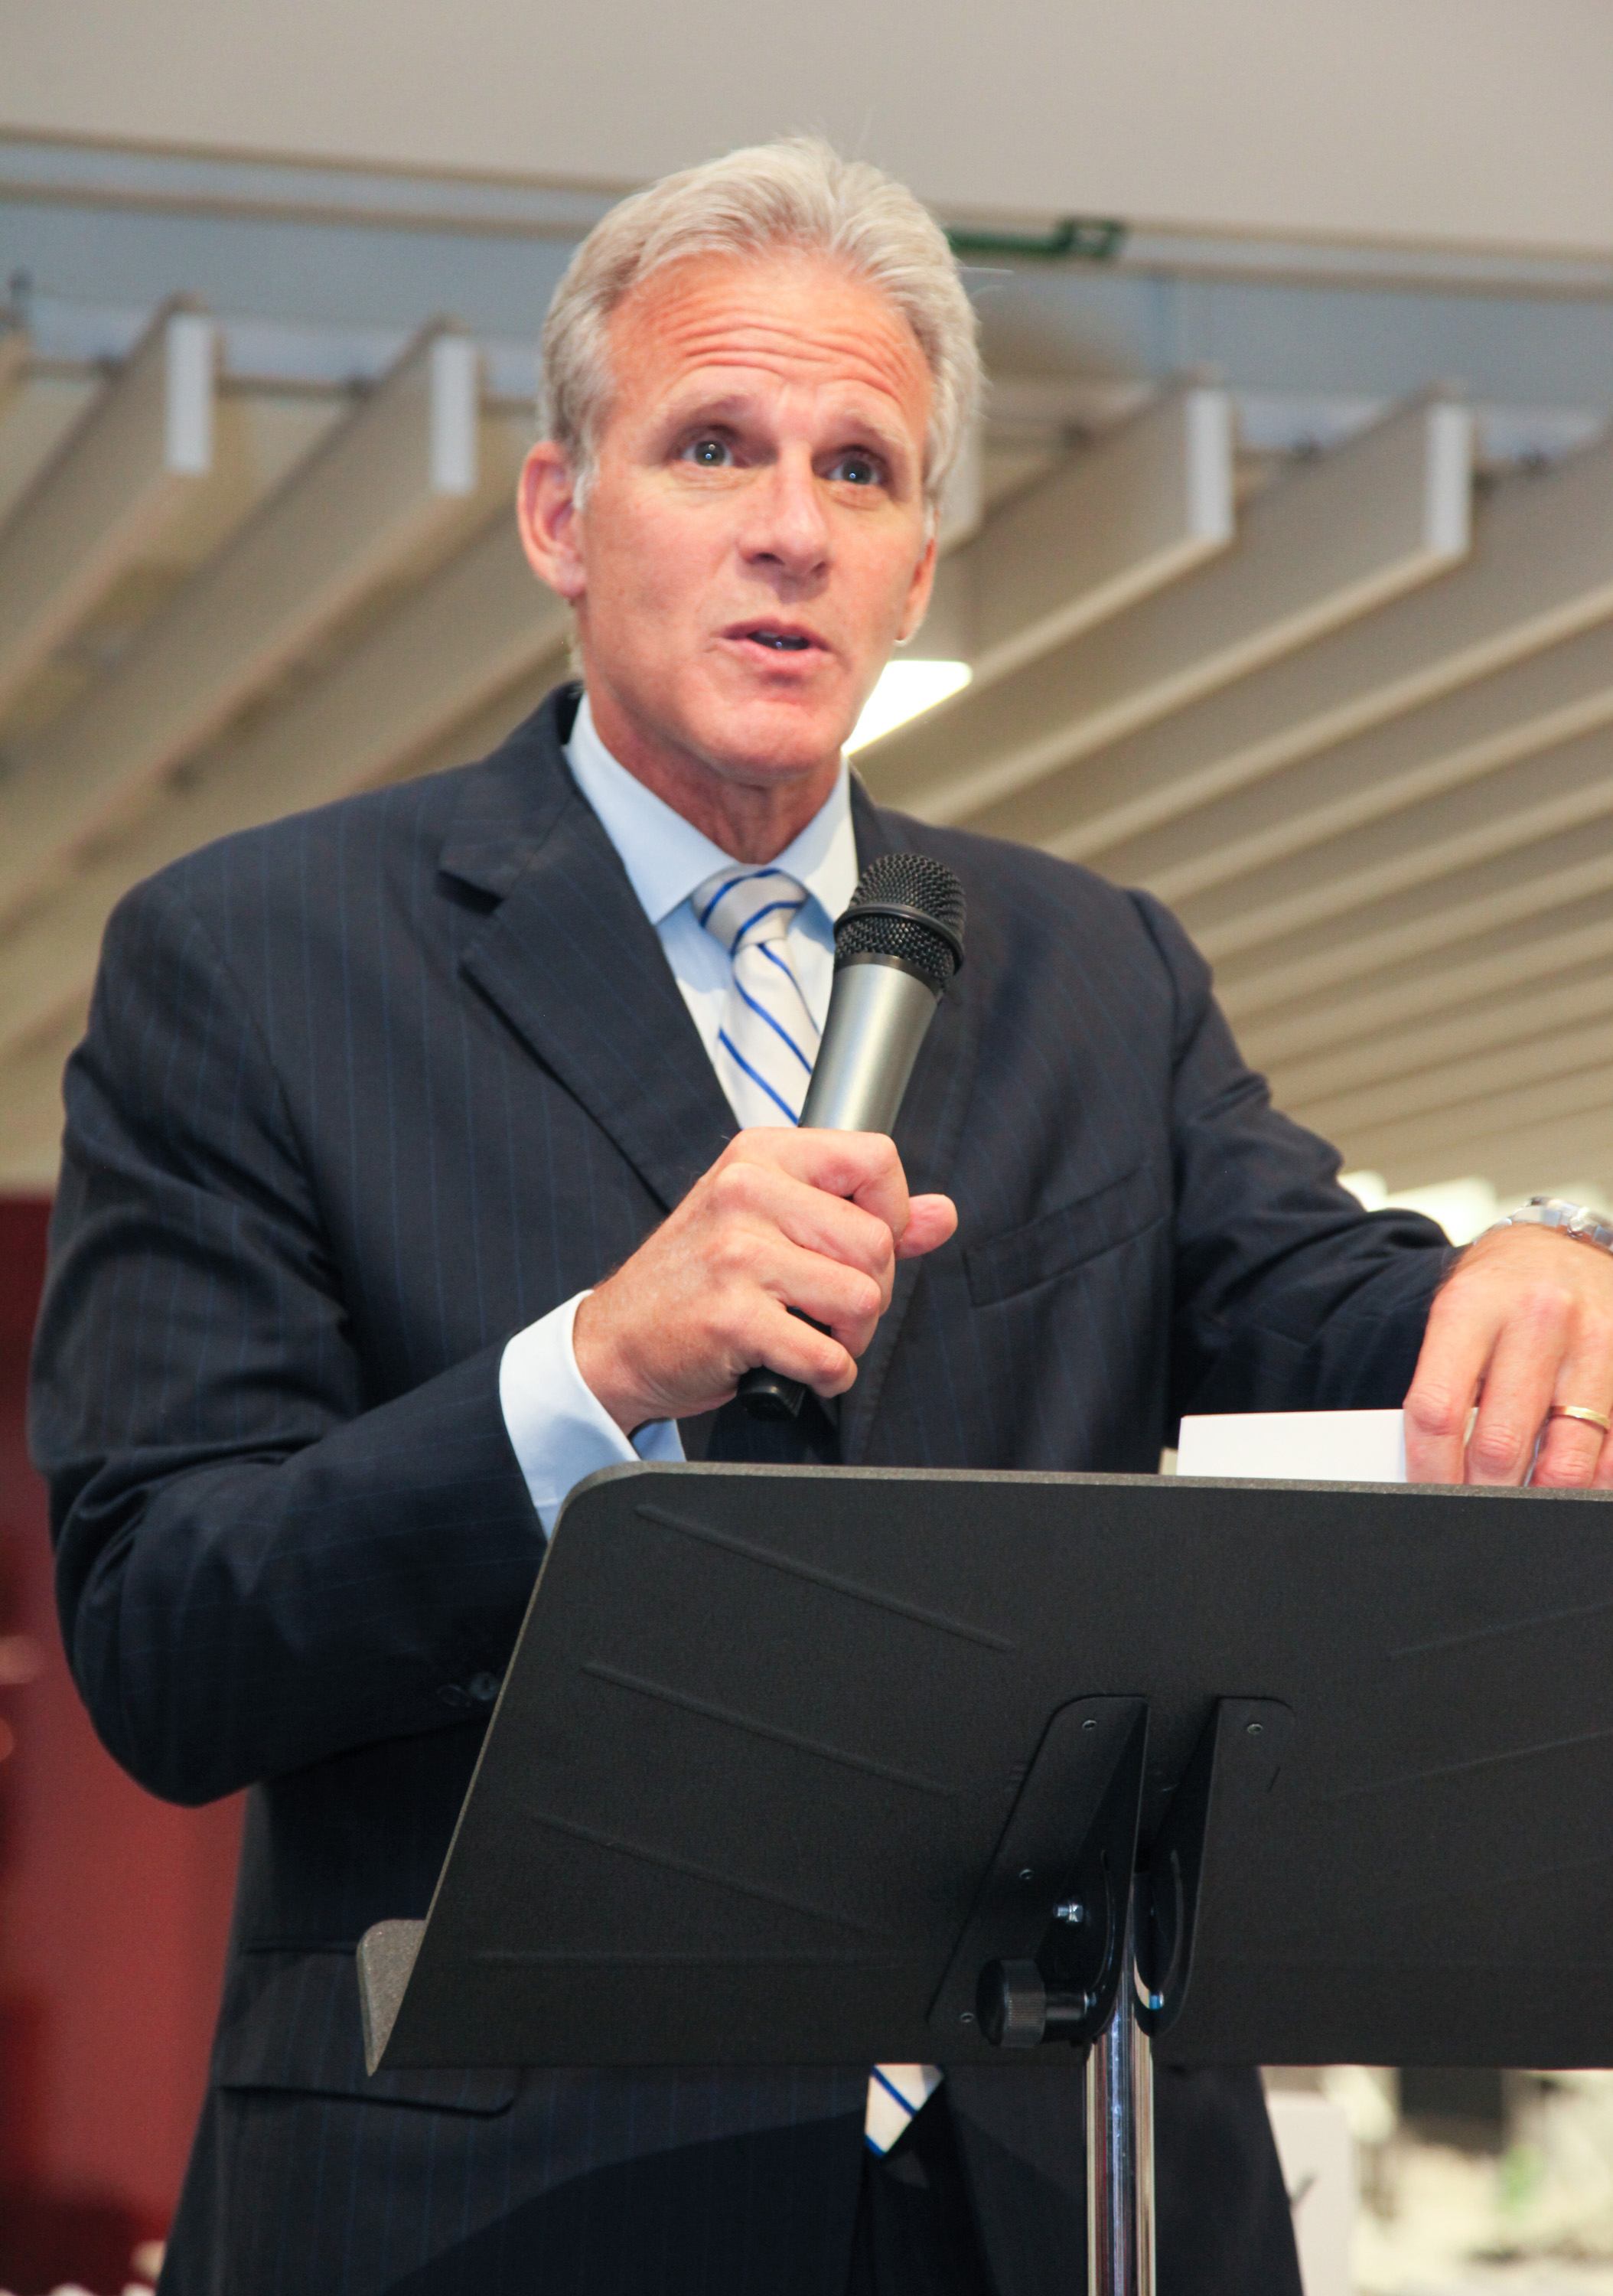 Knesset member Michael Oren speaks during his book release party for  Ally: My Journey Across the American-Israeli Divide  at Gerson Lehrman Group on June 18, 2015 in New York City.